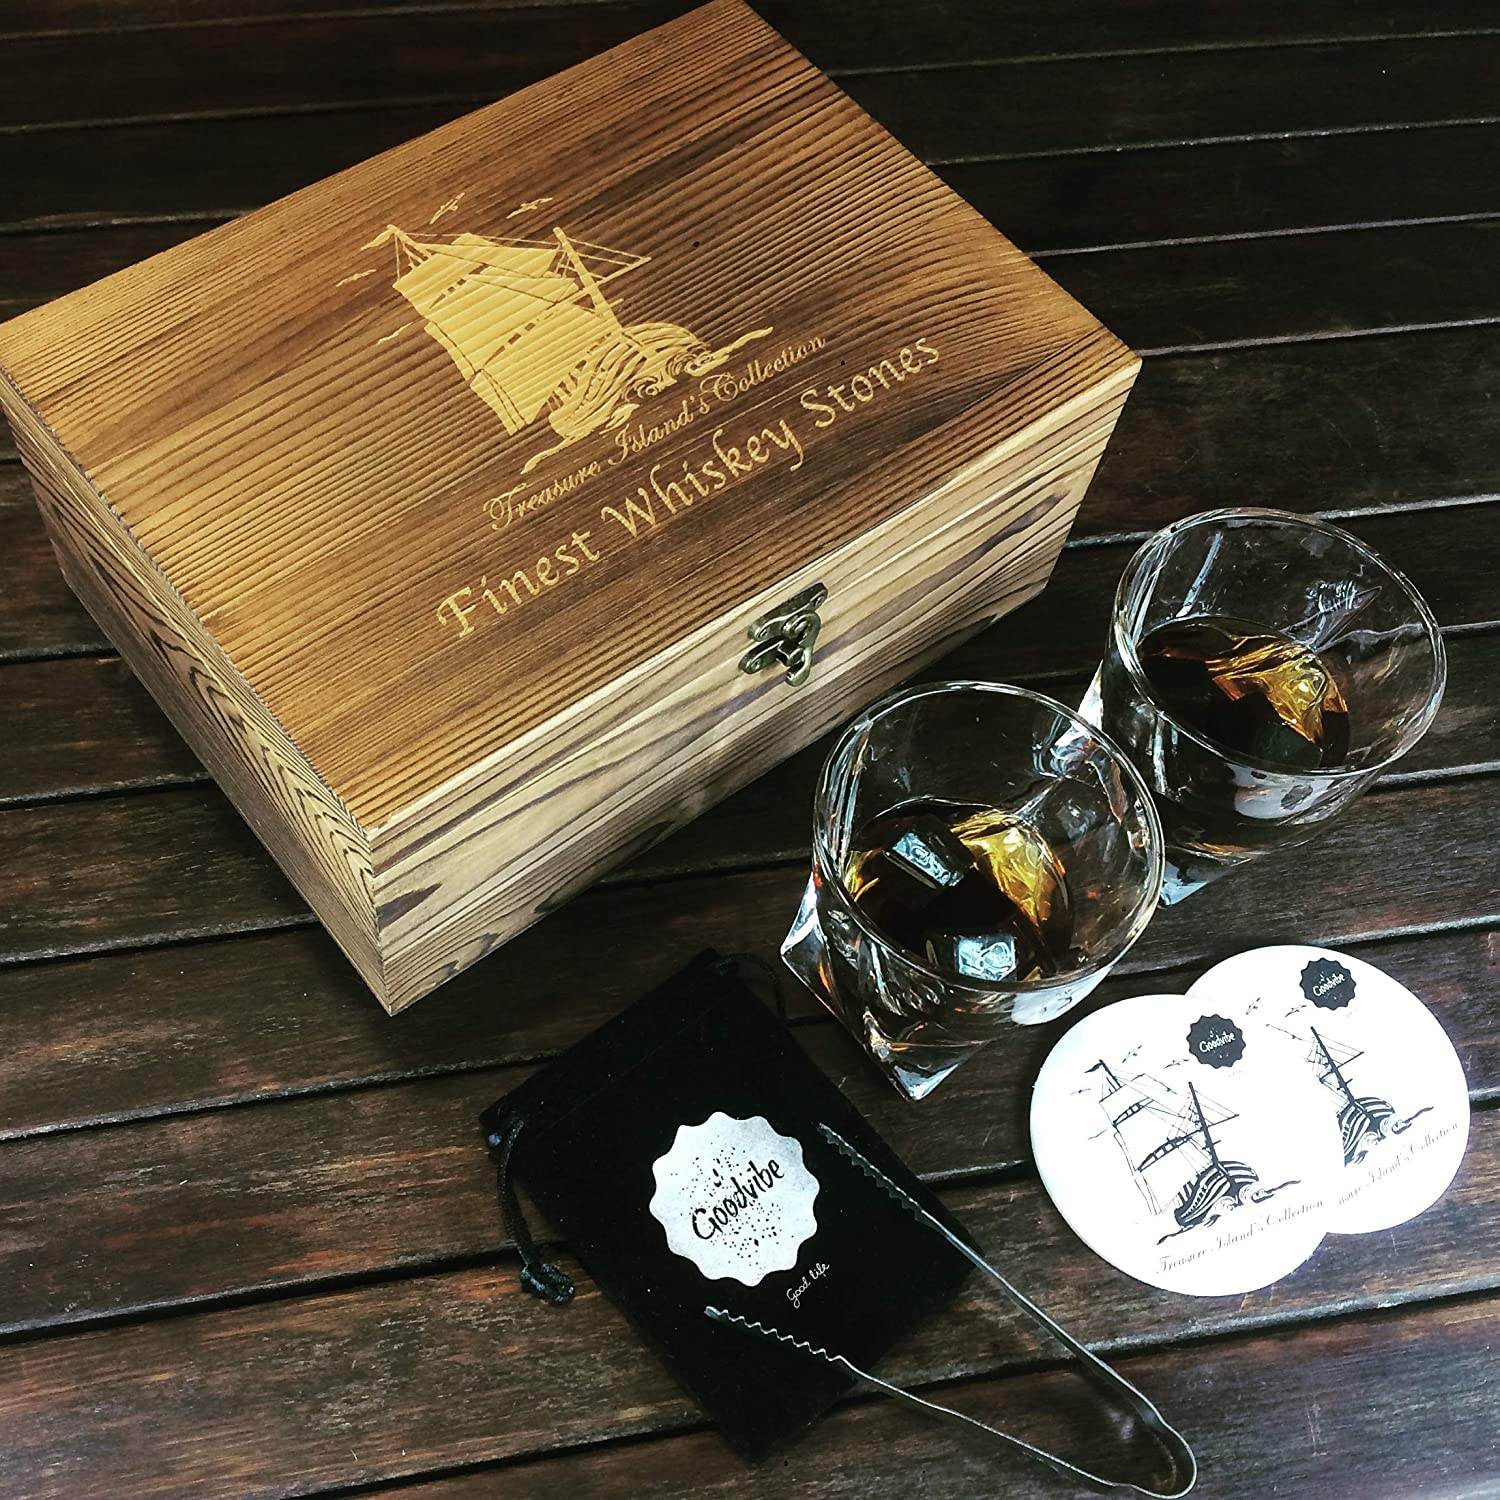 Treasure Islands Collection Whiskey Stones and Glass Gift Set Velvet Pouch /& Tongs in Elegant Wooden Box 2 Free Coasters 2 Large Whiskey Crystal Glasses 8 Reusable Granite Chilling Rocks